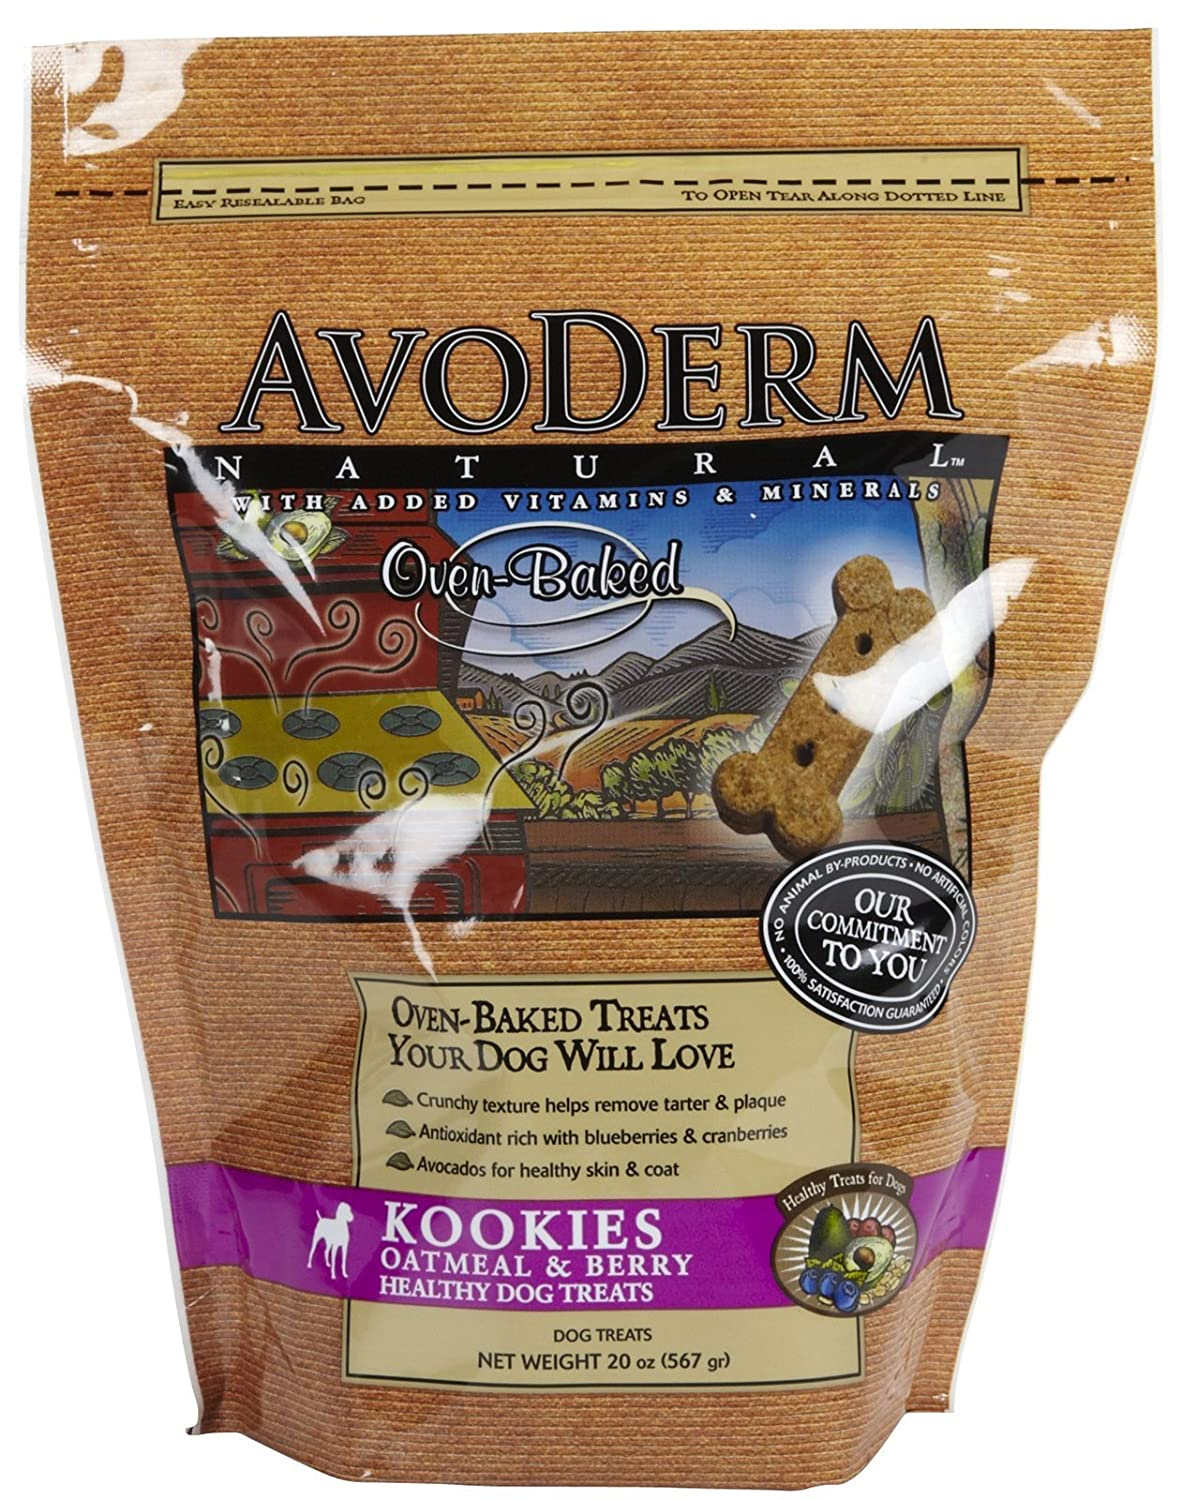 AvoDerm Oatmeal and Berry Biscuit Dog Treat good